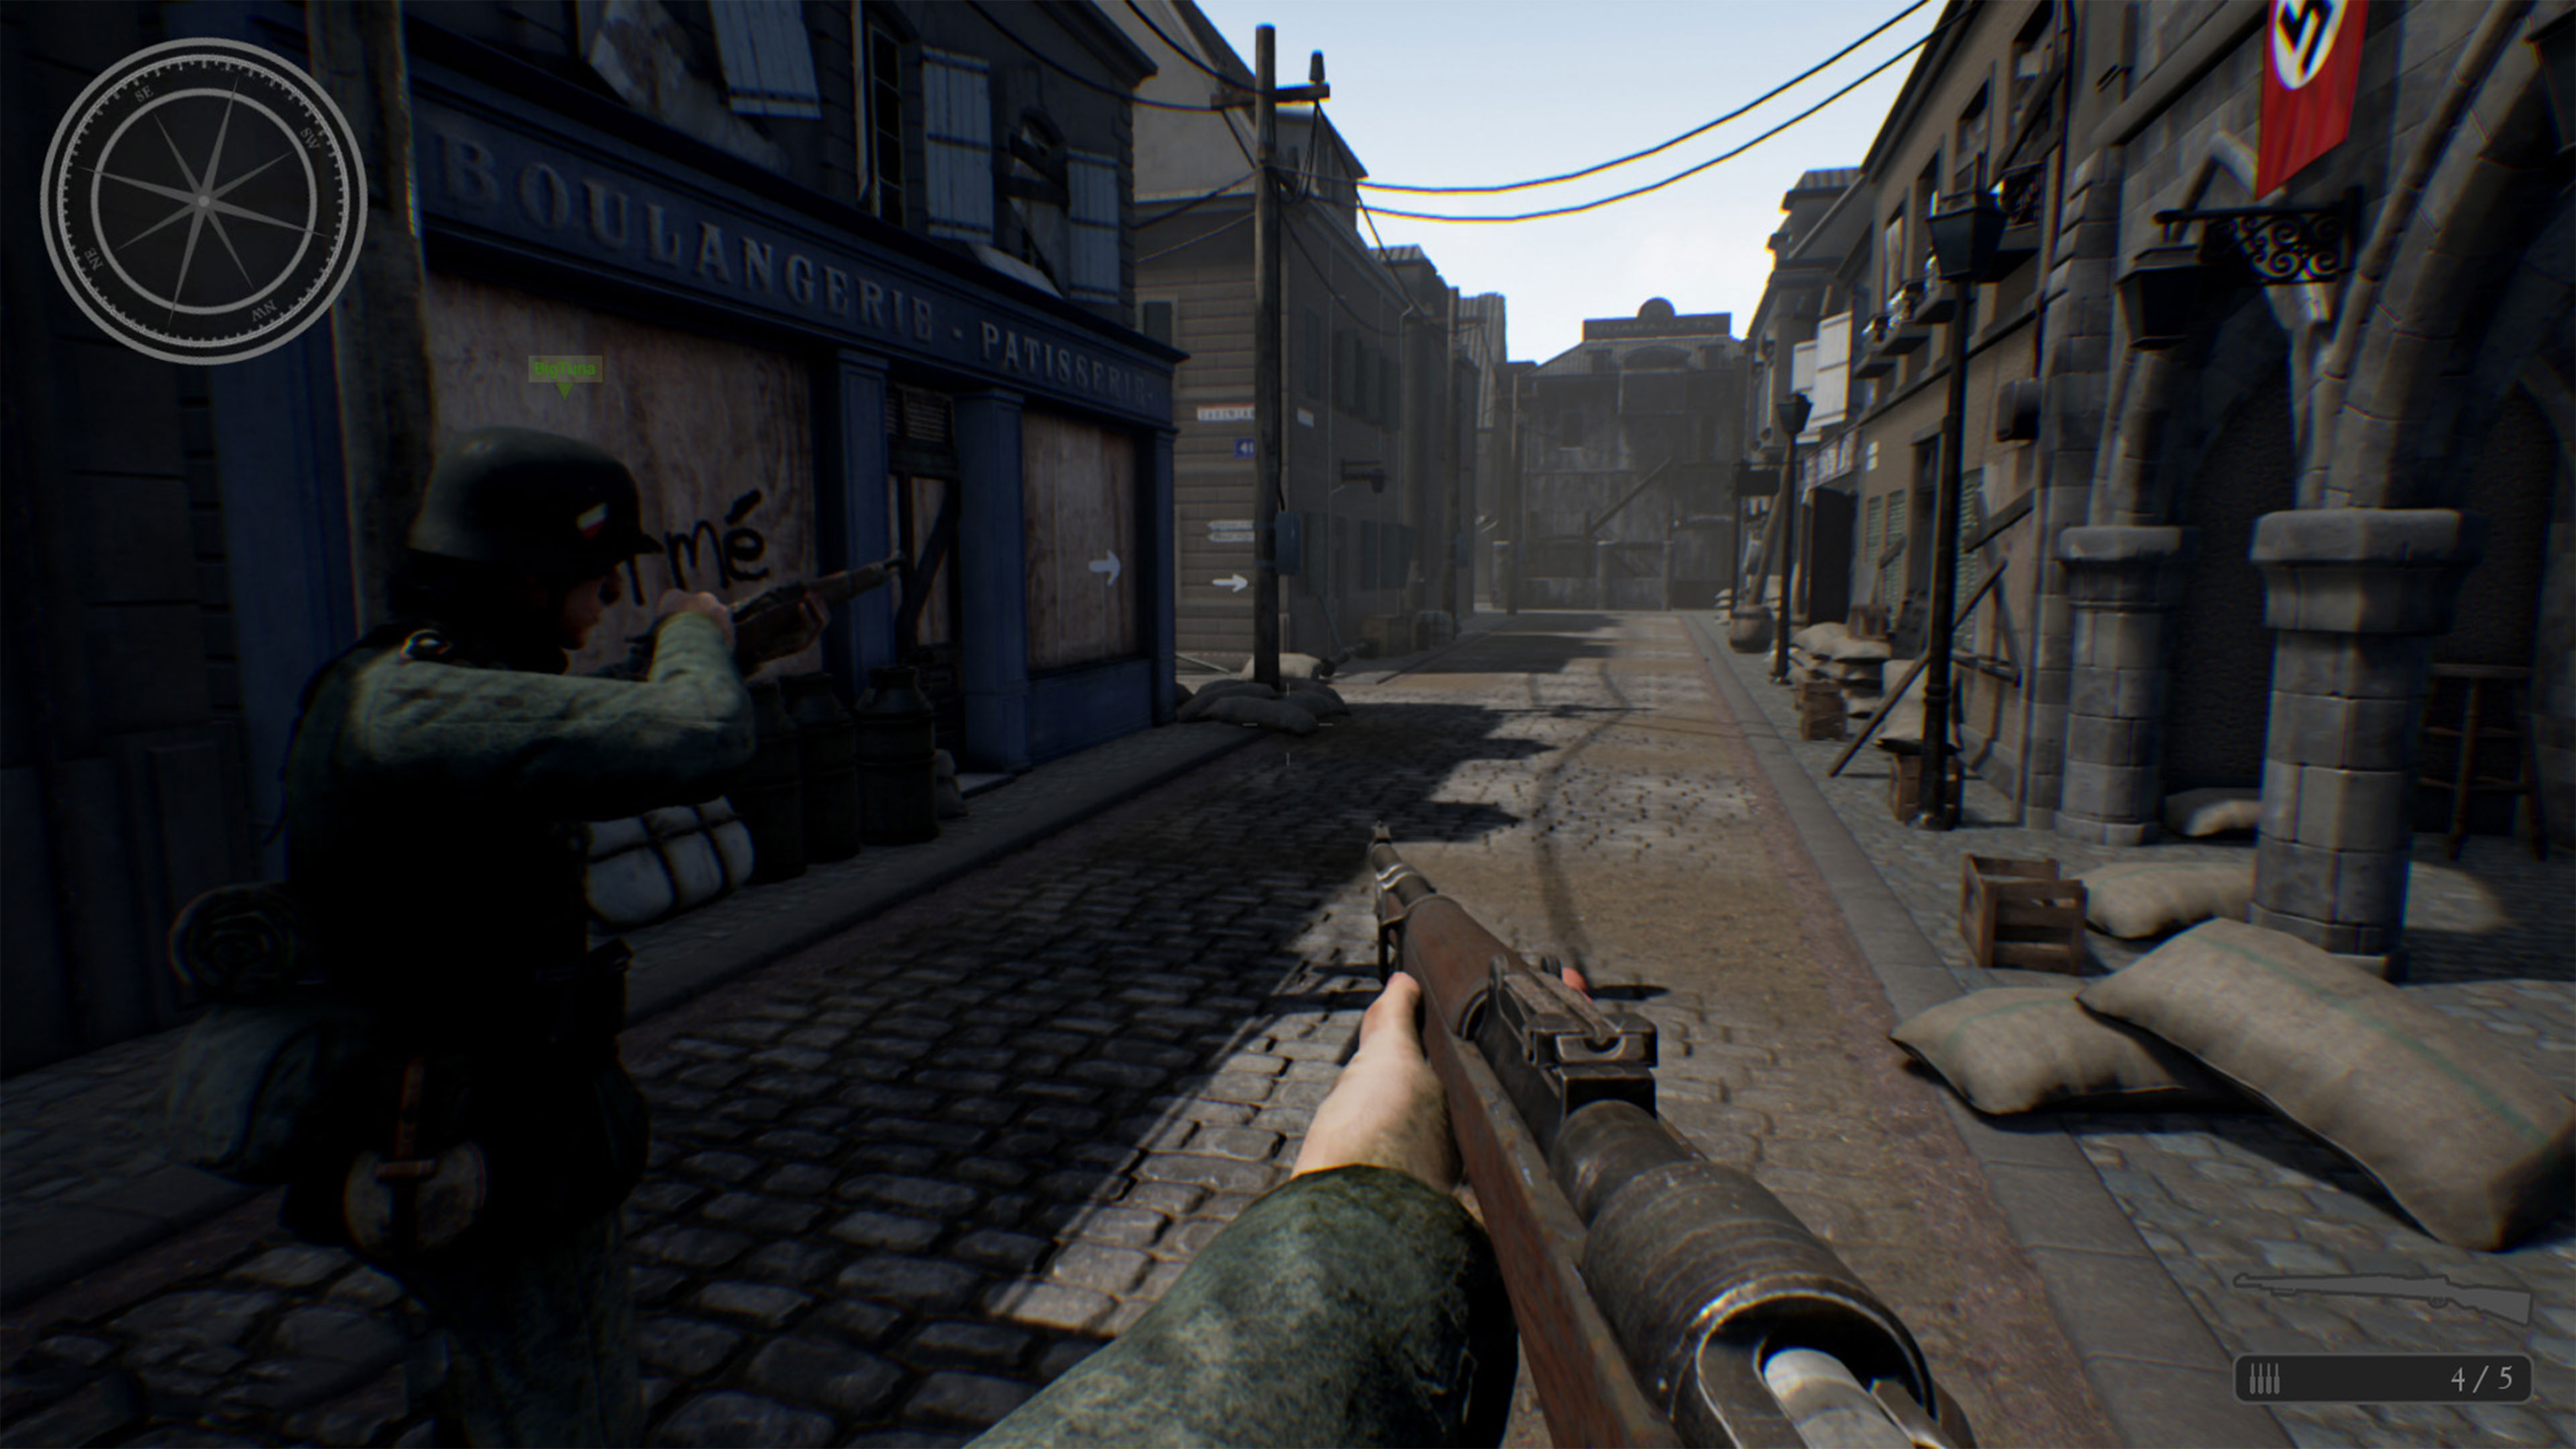 Battalion 1944 wallpapers in ultra hd 4k battalion 1944 4k wallpaper voltagebd Image collections